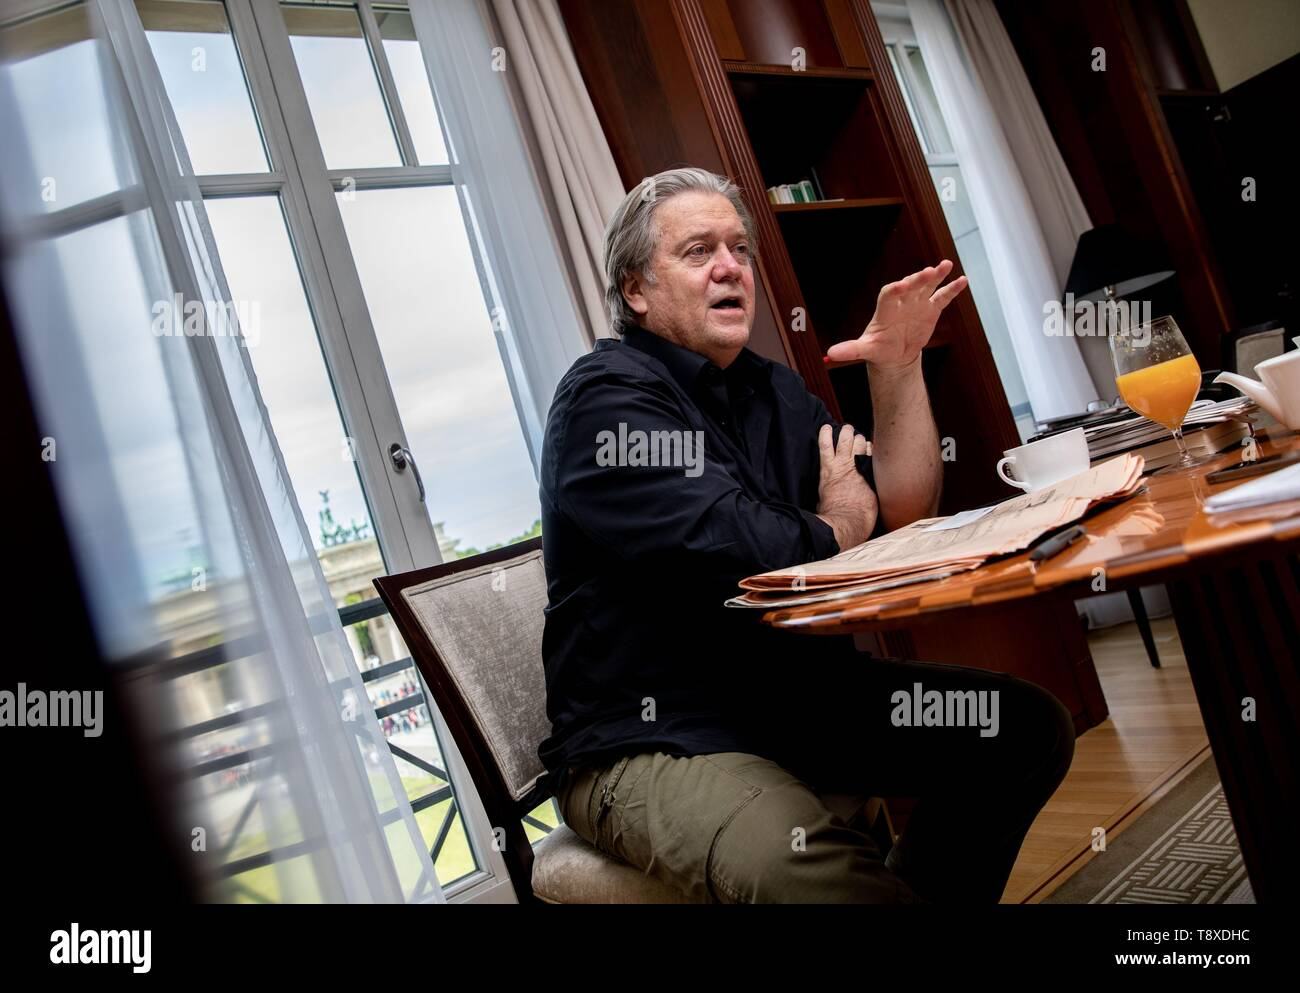 Berlin, Germany. 15th May, 2019. Steve Bannon, former advisor to the US president and US publicist, sits on a chair in a room of the Hotel Adlon during an interview with the German Press Agency dpa with a view of the Brandenburg Gate and gestures. Credit: Kay Nietfeld/dpa/Alamy Live News - Stock Image